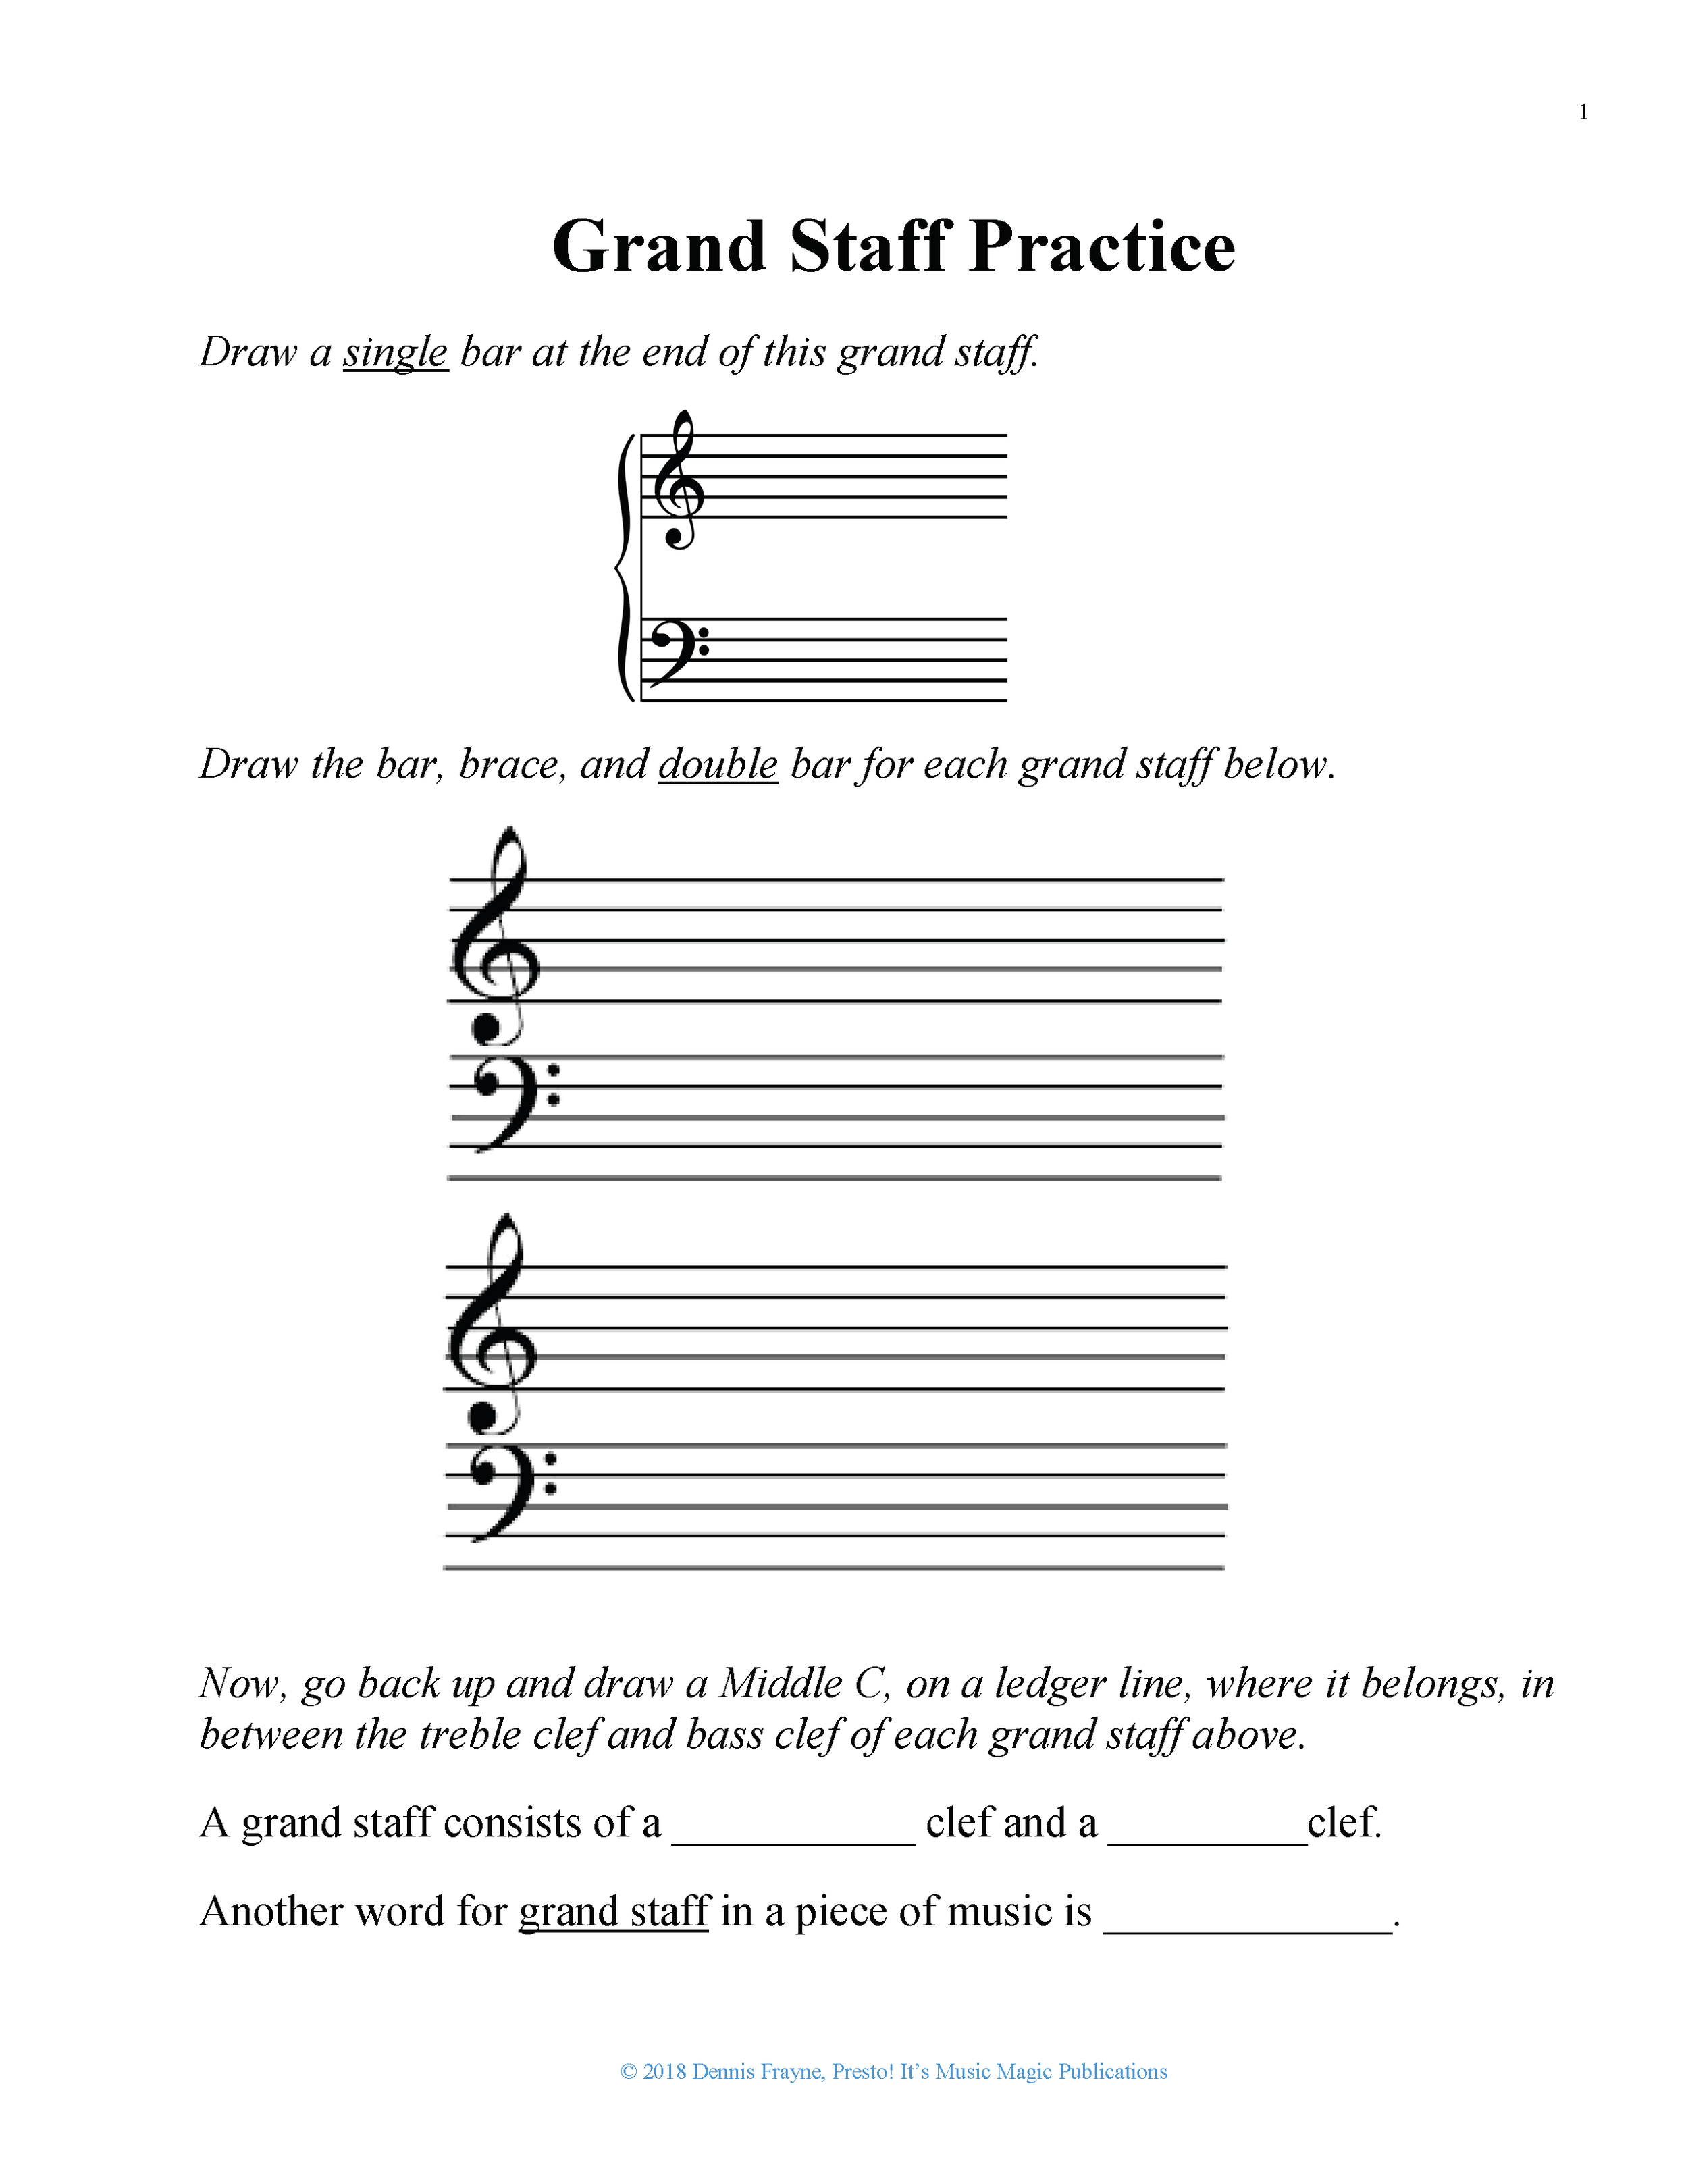 Grand Staff Practice, Worksheet, Level 0 2 pages